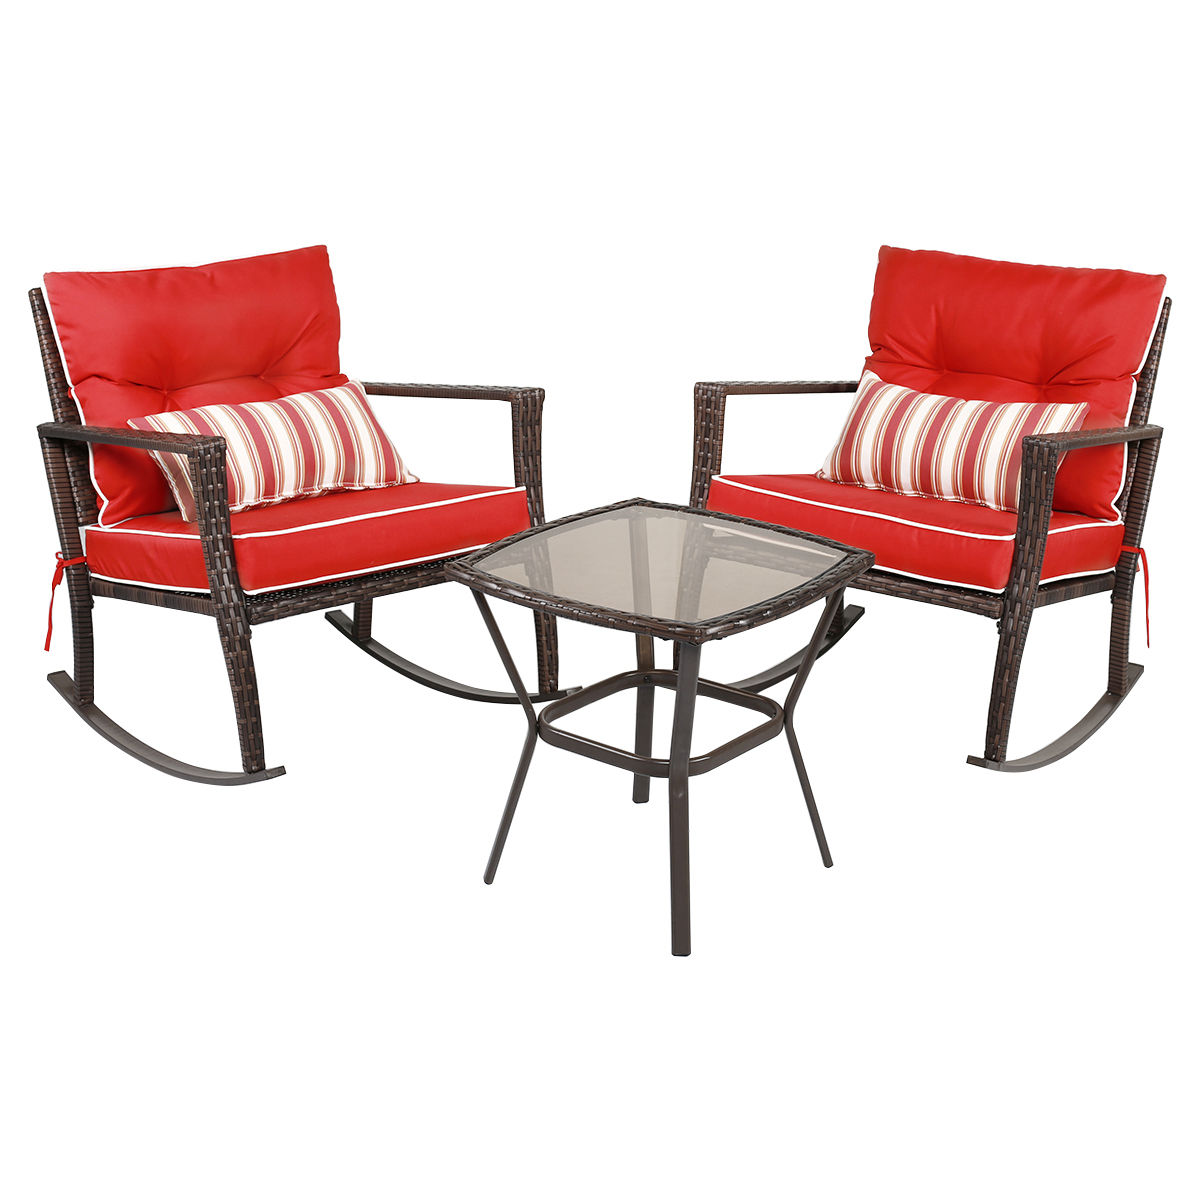 GHP Outdoor 3-Pcs Durable and Sturdy Rattan Rocking Chair Furniture Set w Red Cushion